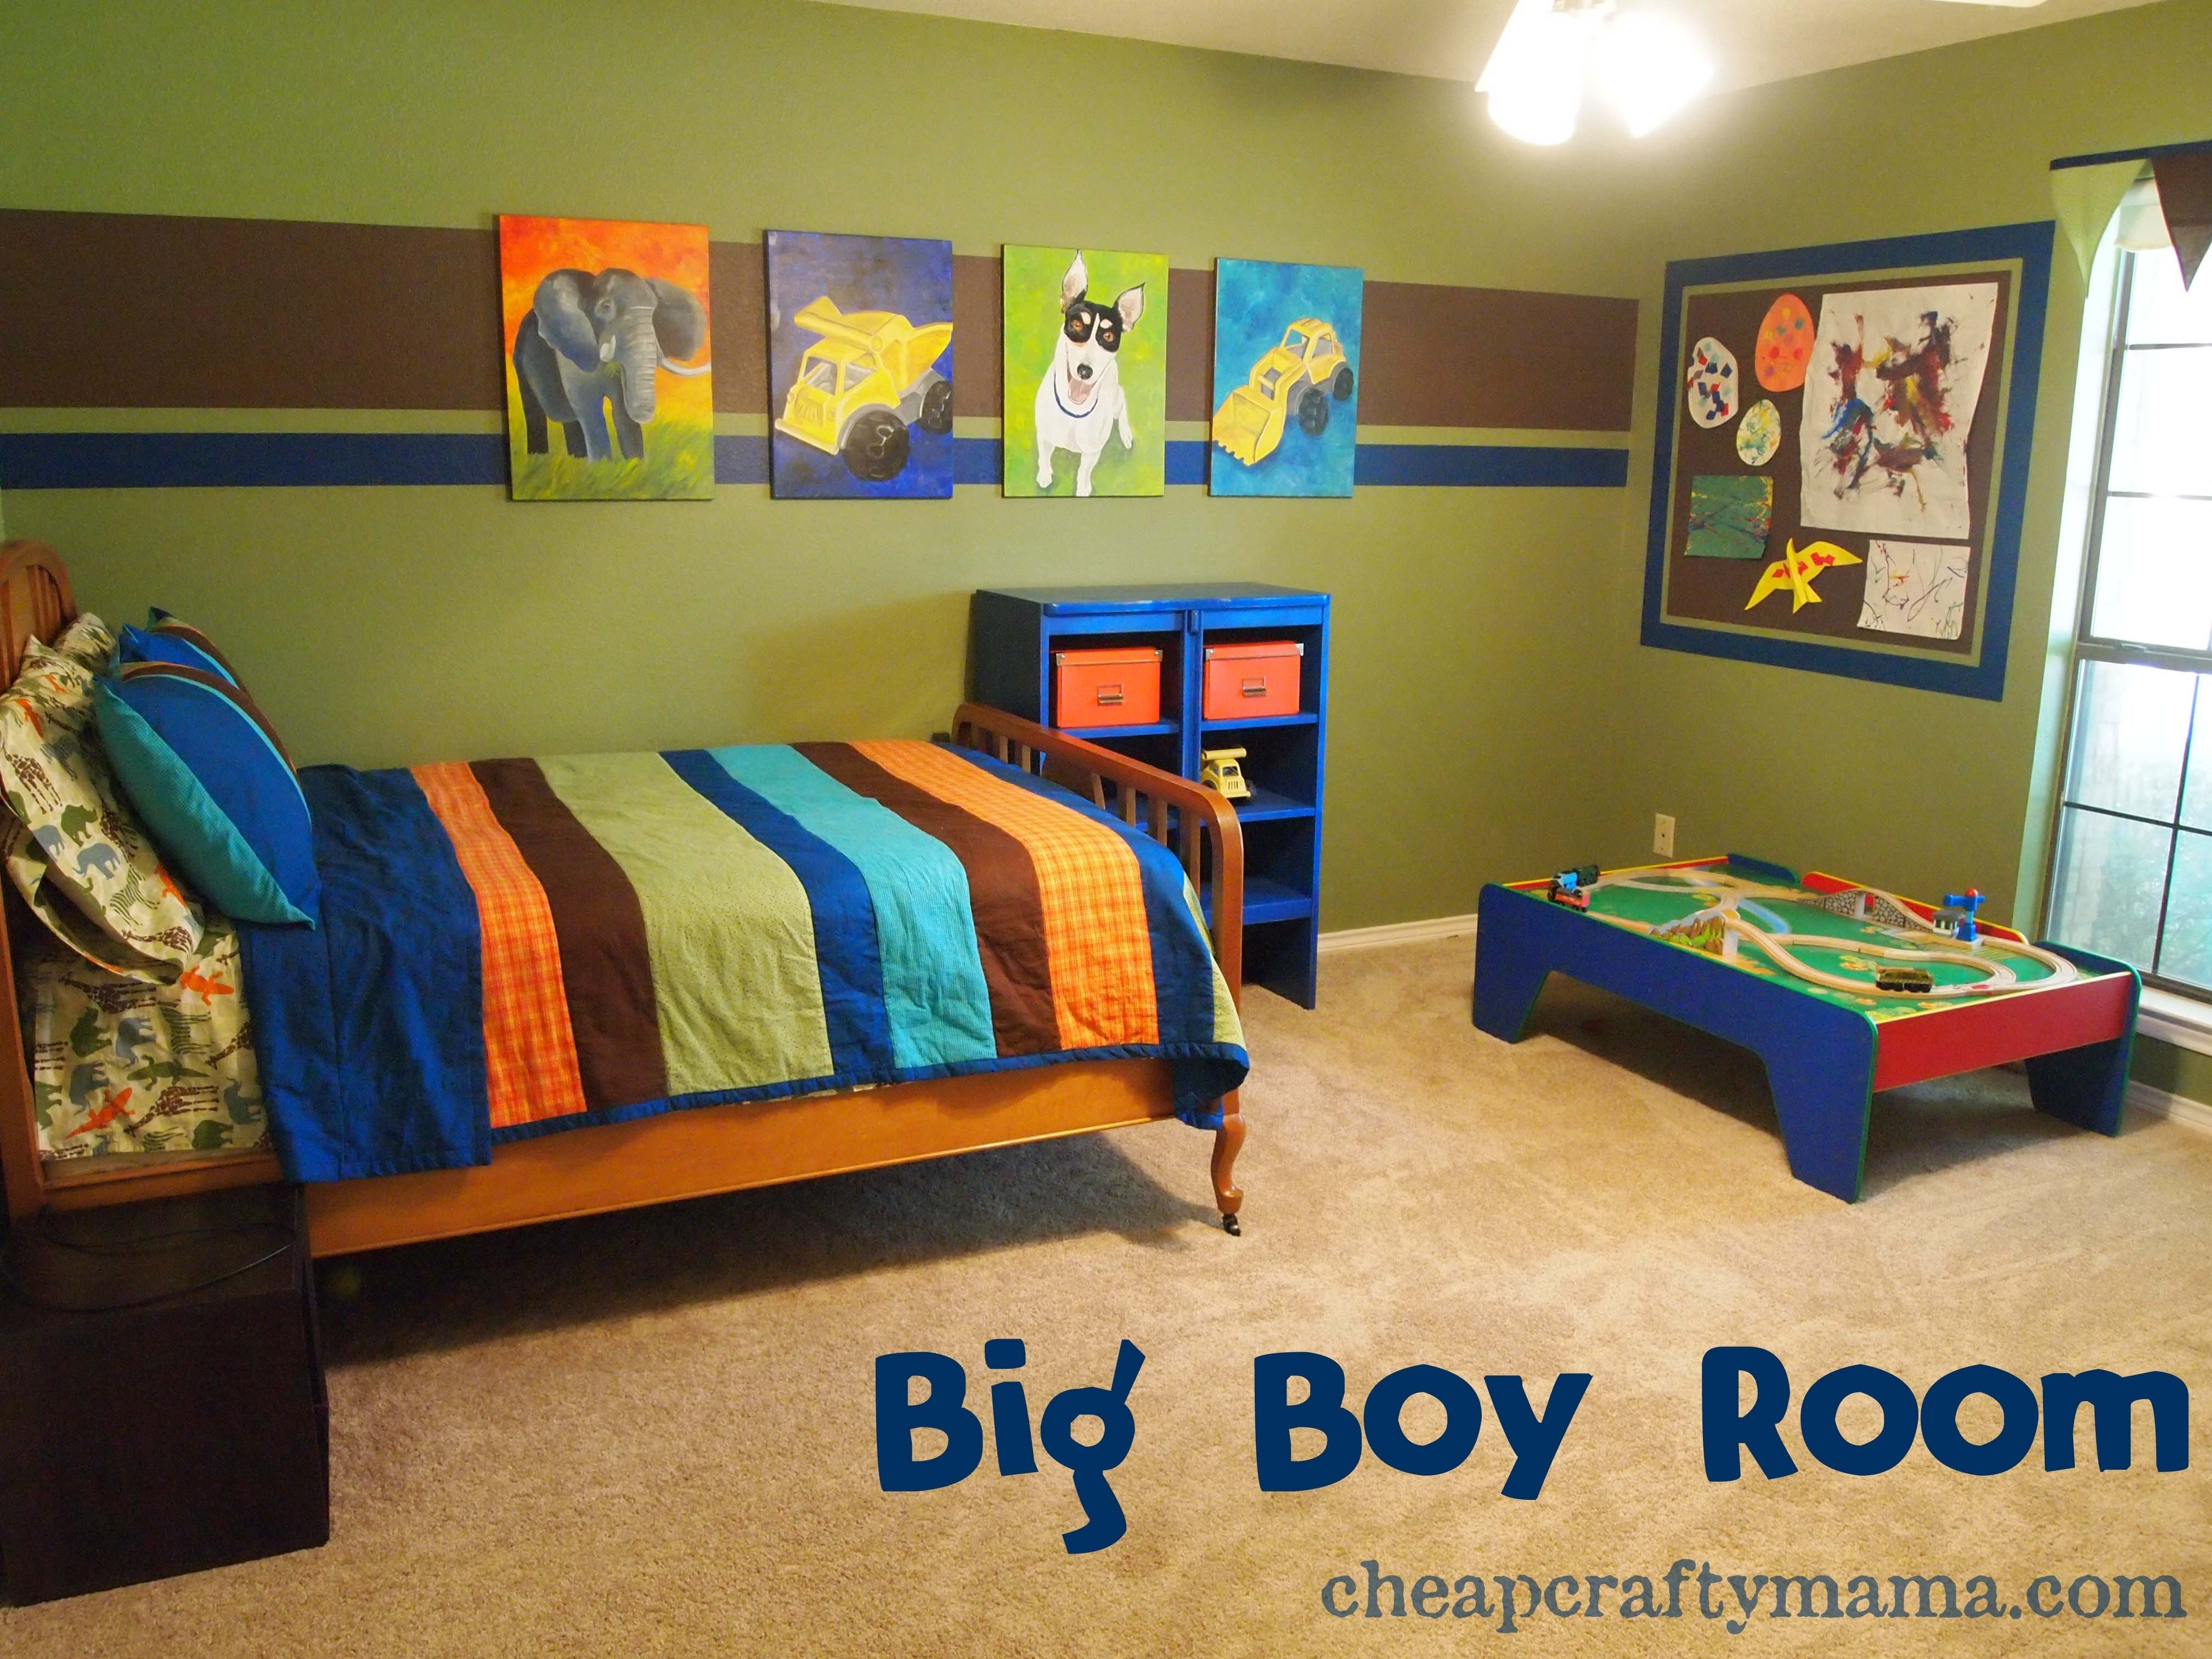 10 Nice Toddler Boy Room Decorating Ideas bedroom kids room paint colors toddler boy room decor boy room 2020